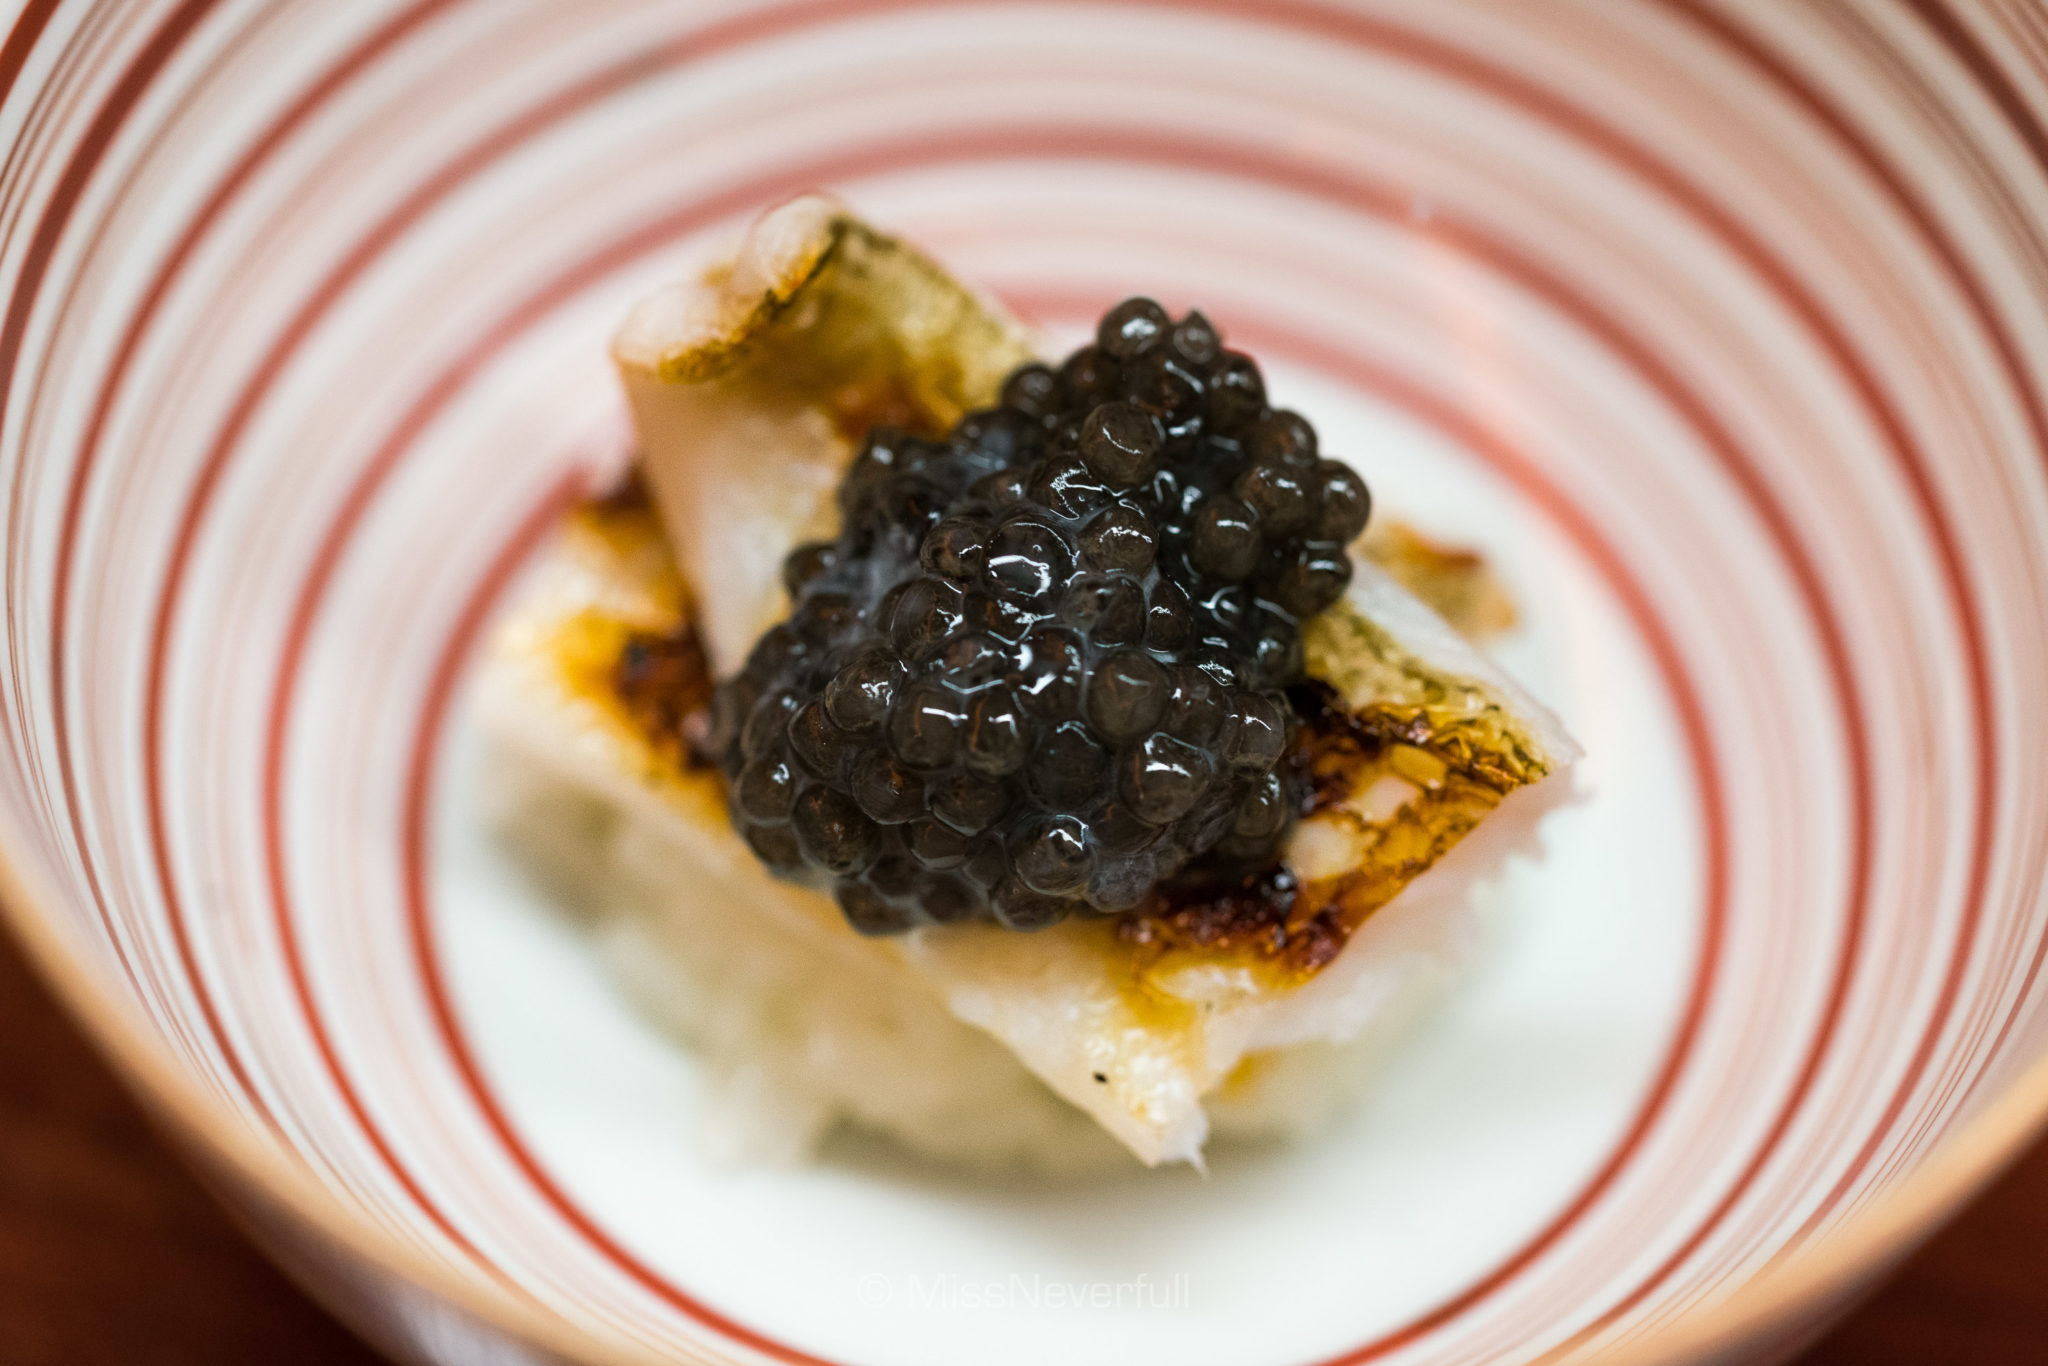 2. Hamo, caviar with steamed mochi rice | 鱧とキャビアの飯蒸し